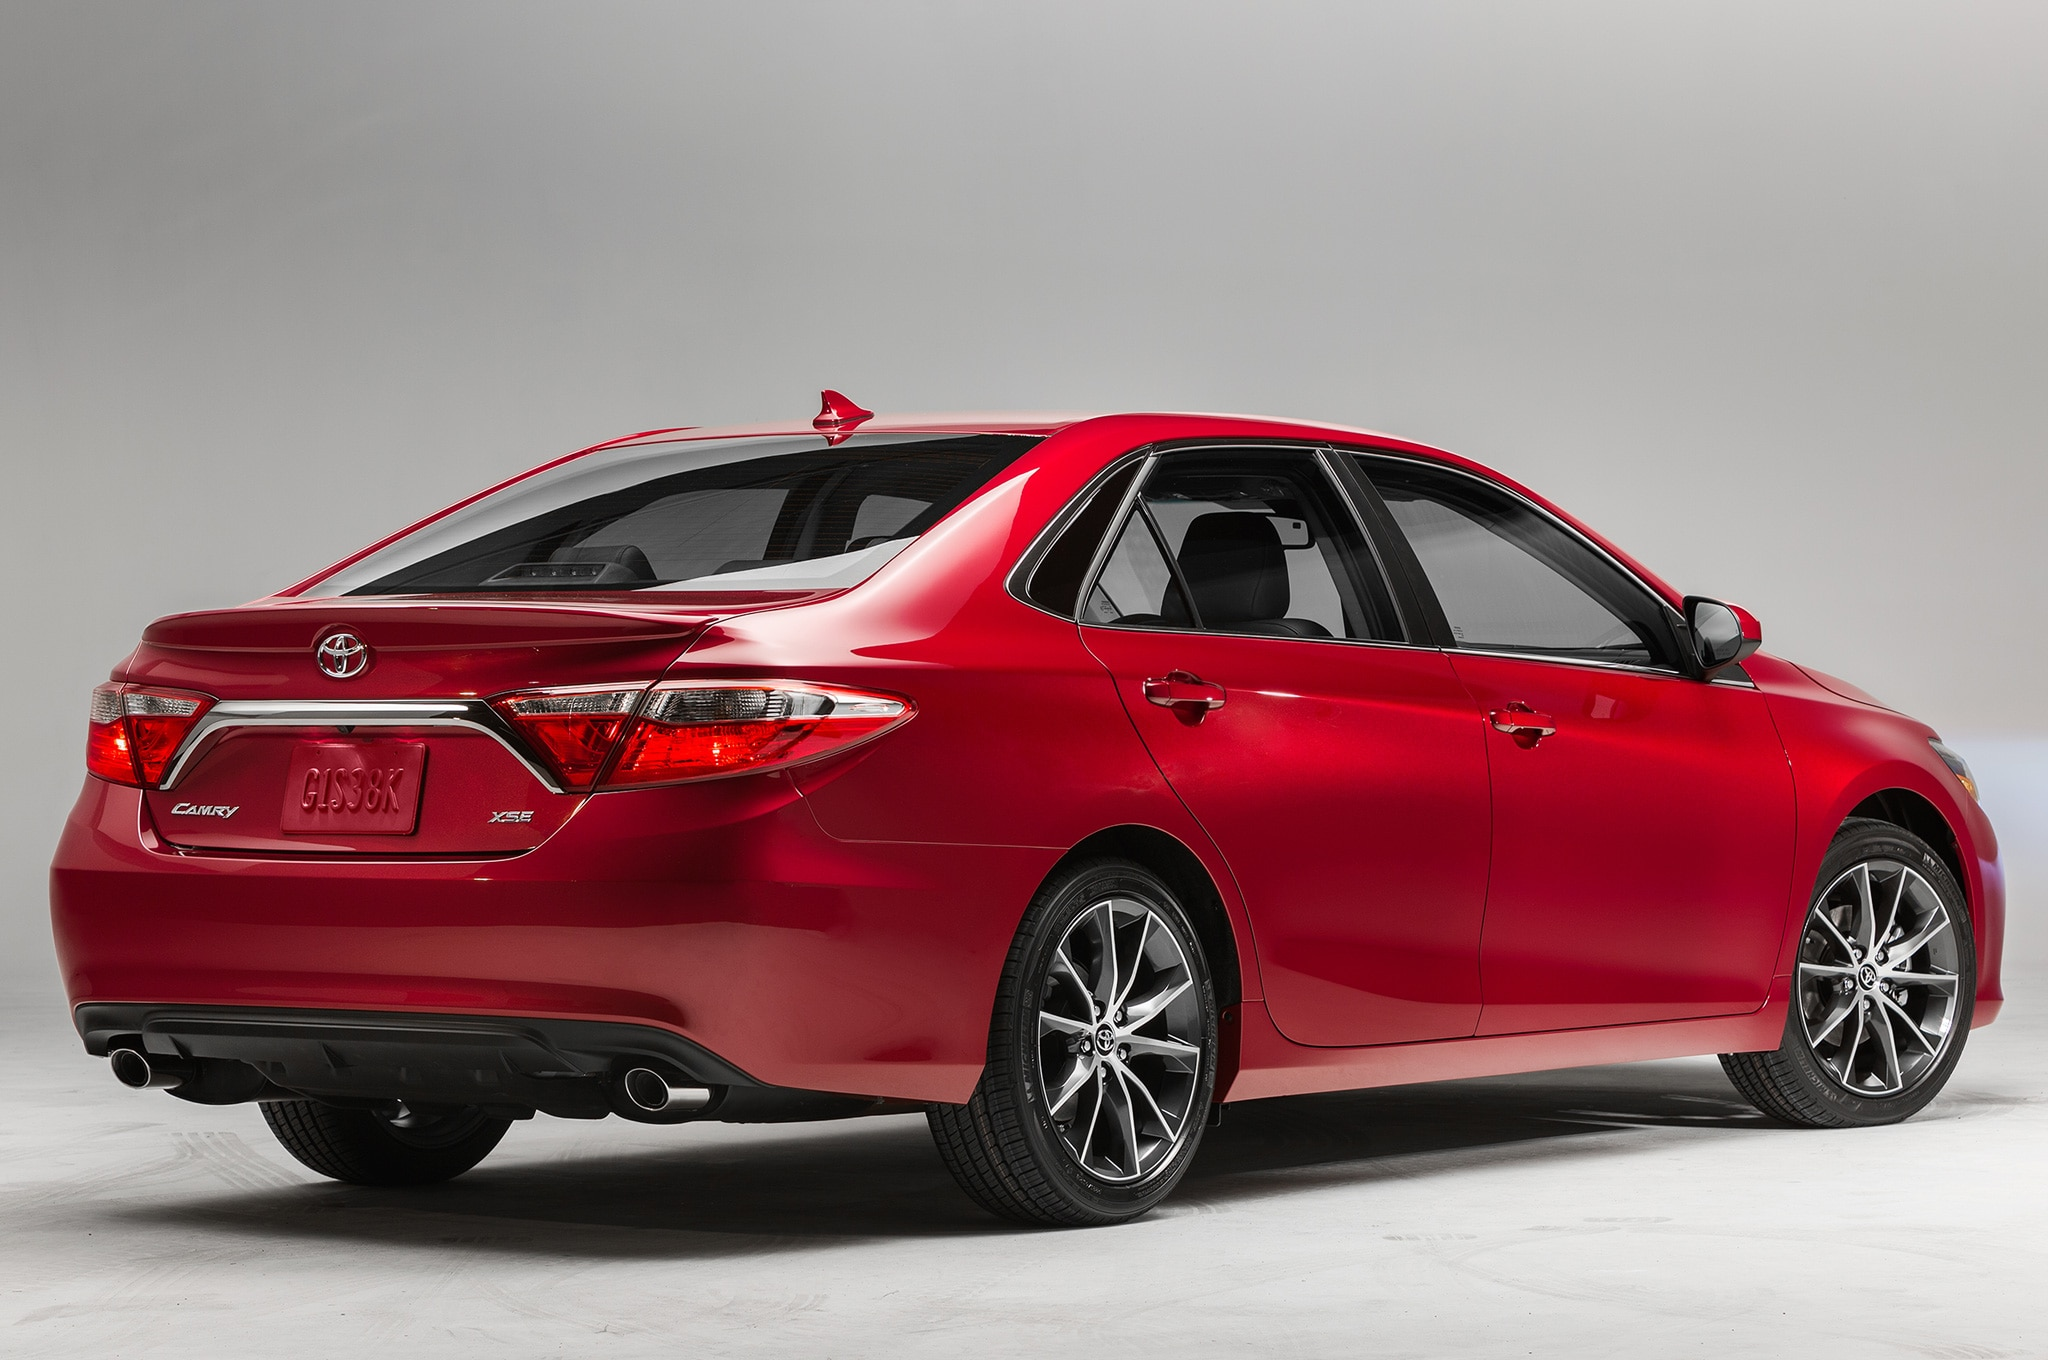 2015 Toyota Camry XSE Rear Side View Studio2